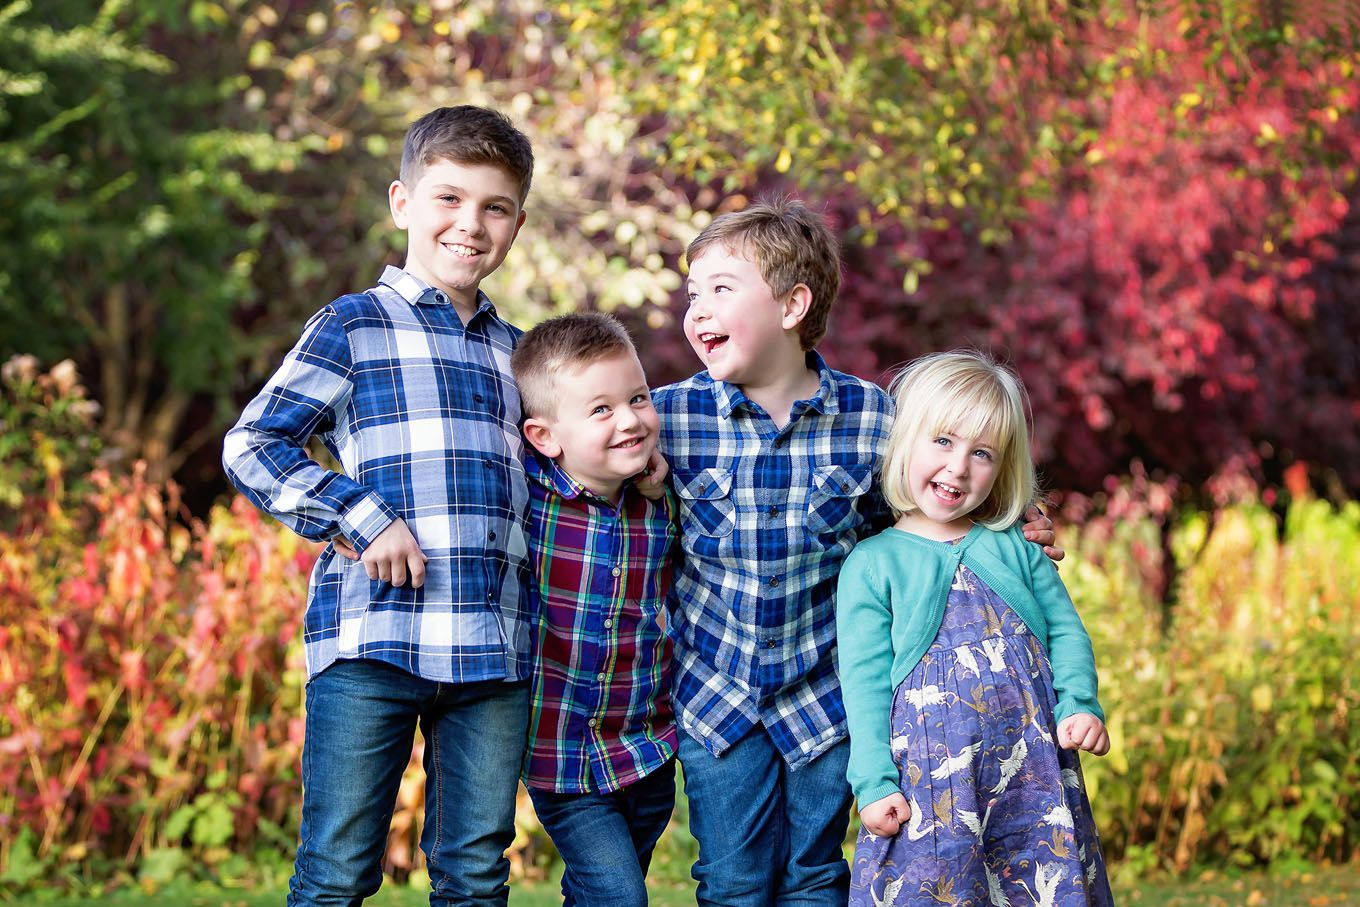 Autumnal outdoor portrait of children